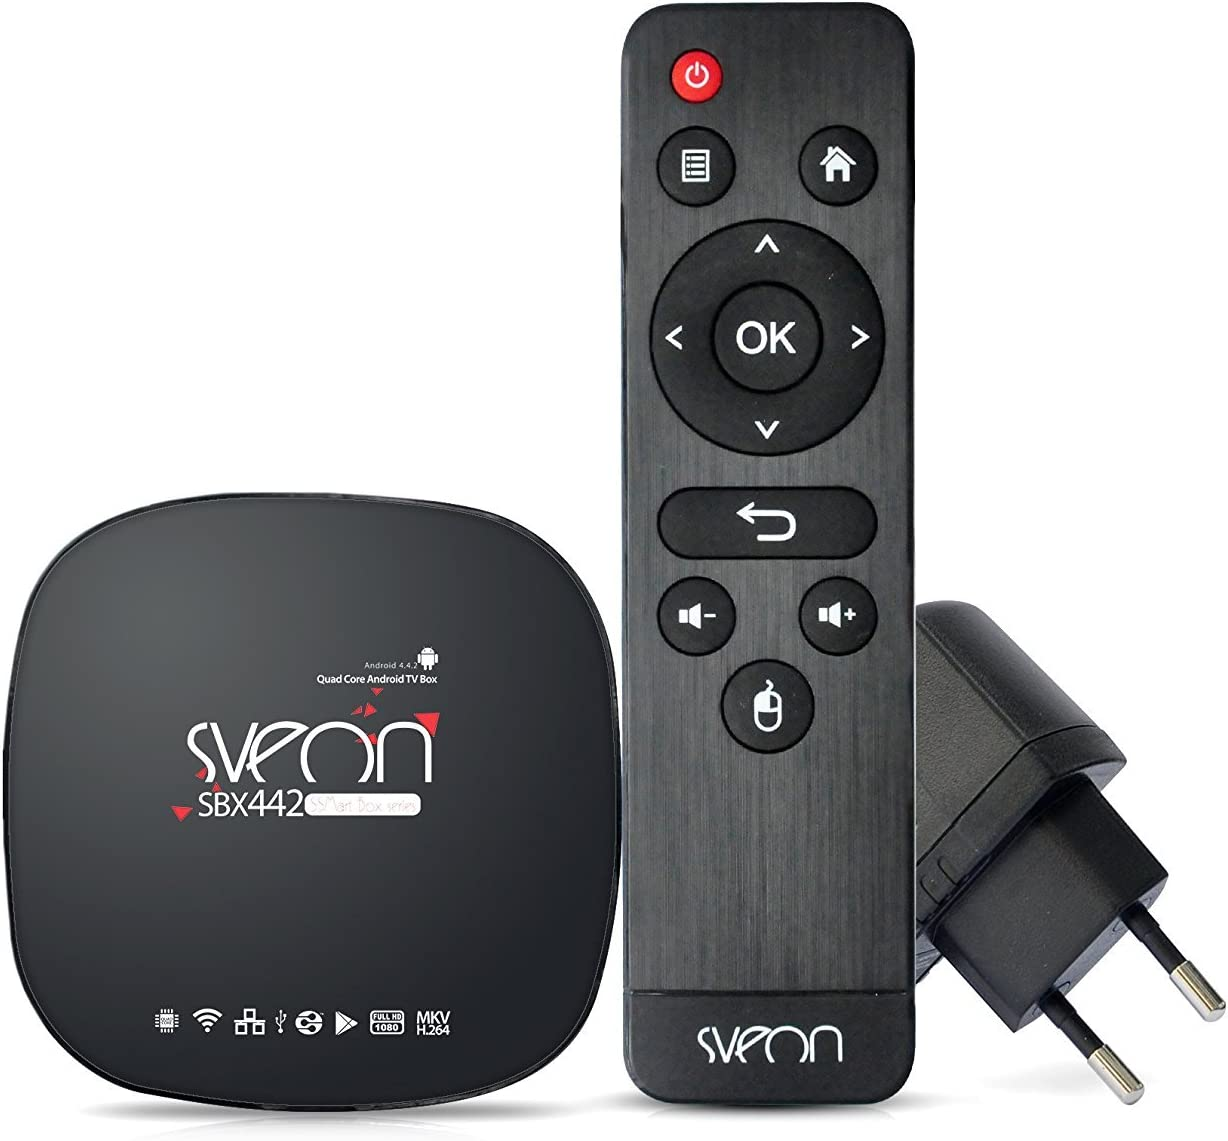 Sveon SBX442 Sveon SBX442 - Mini Android TV Box Quad Core Negro: Amazon.es: Electrónica